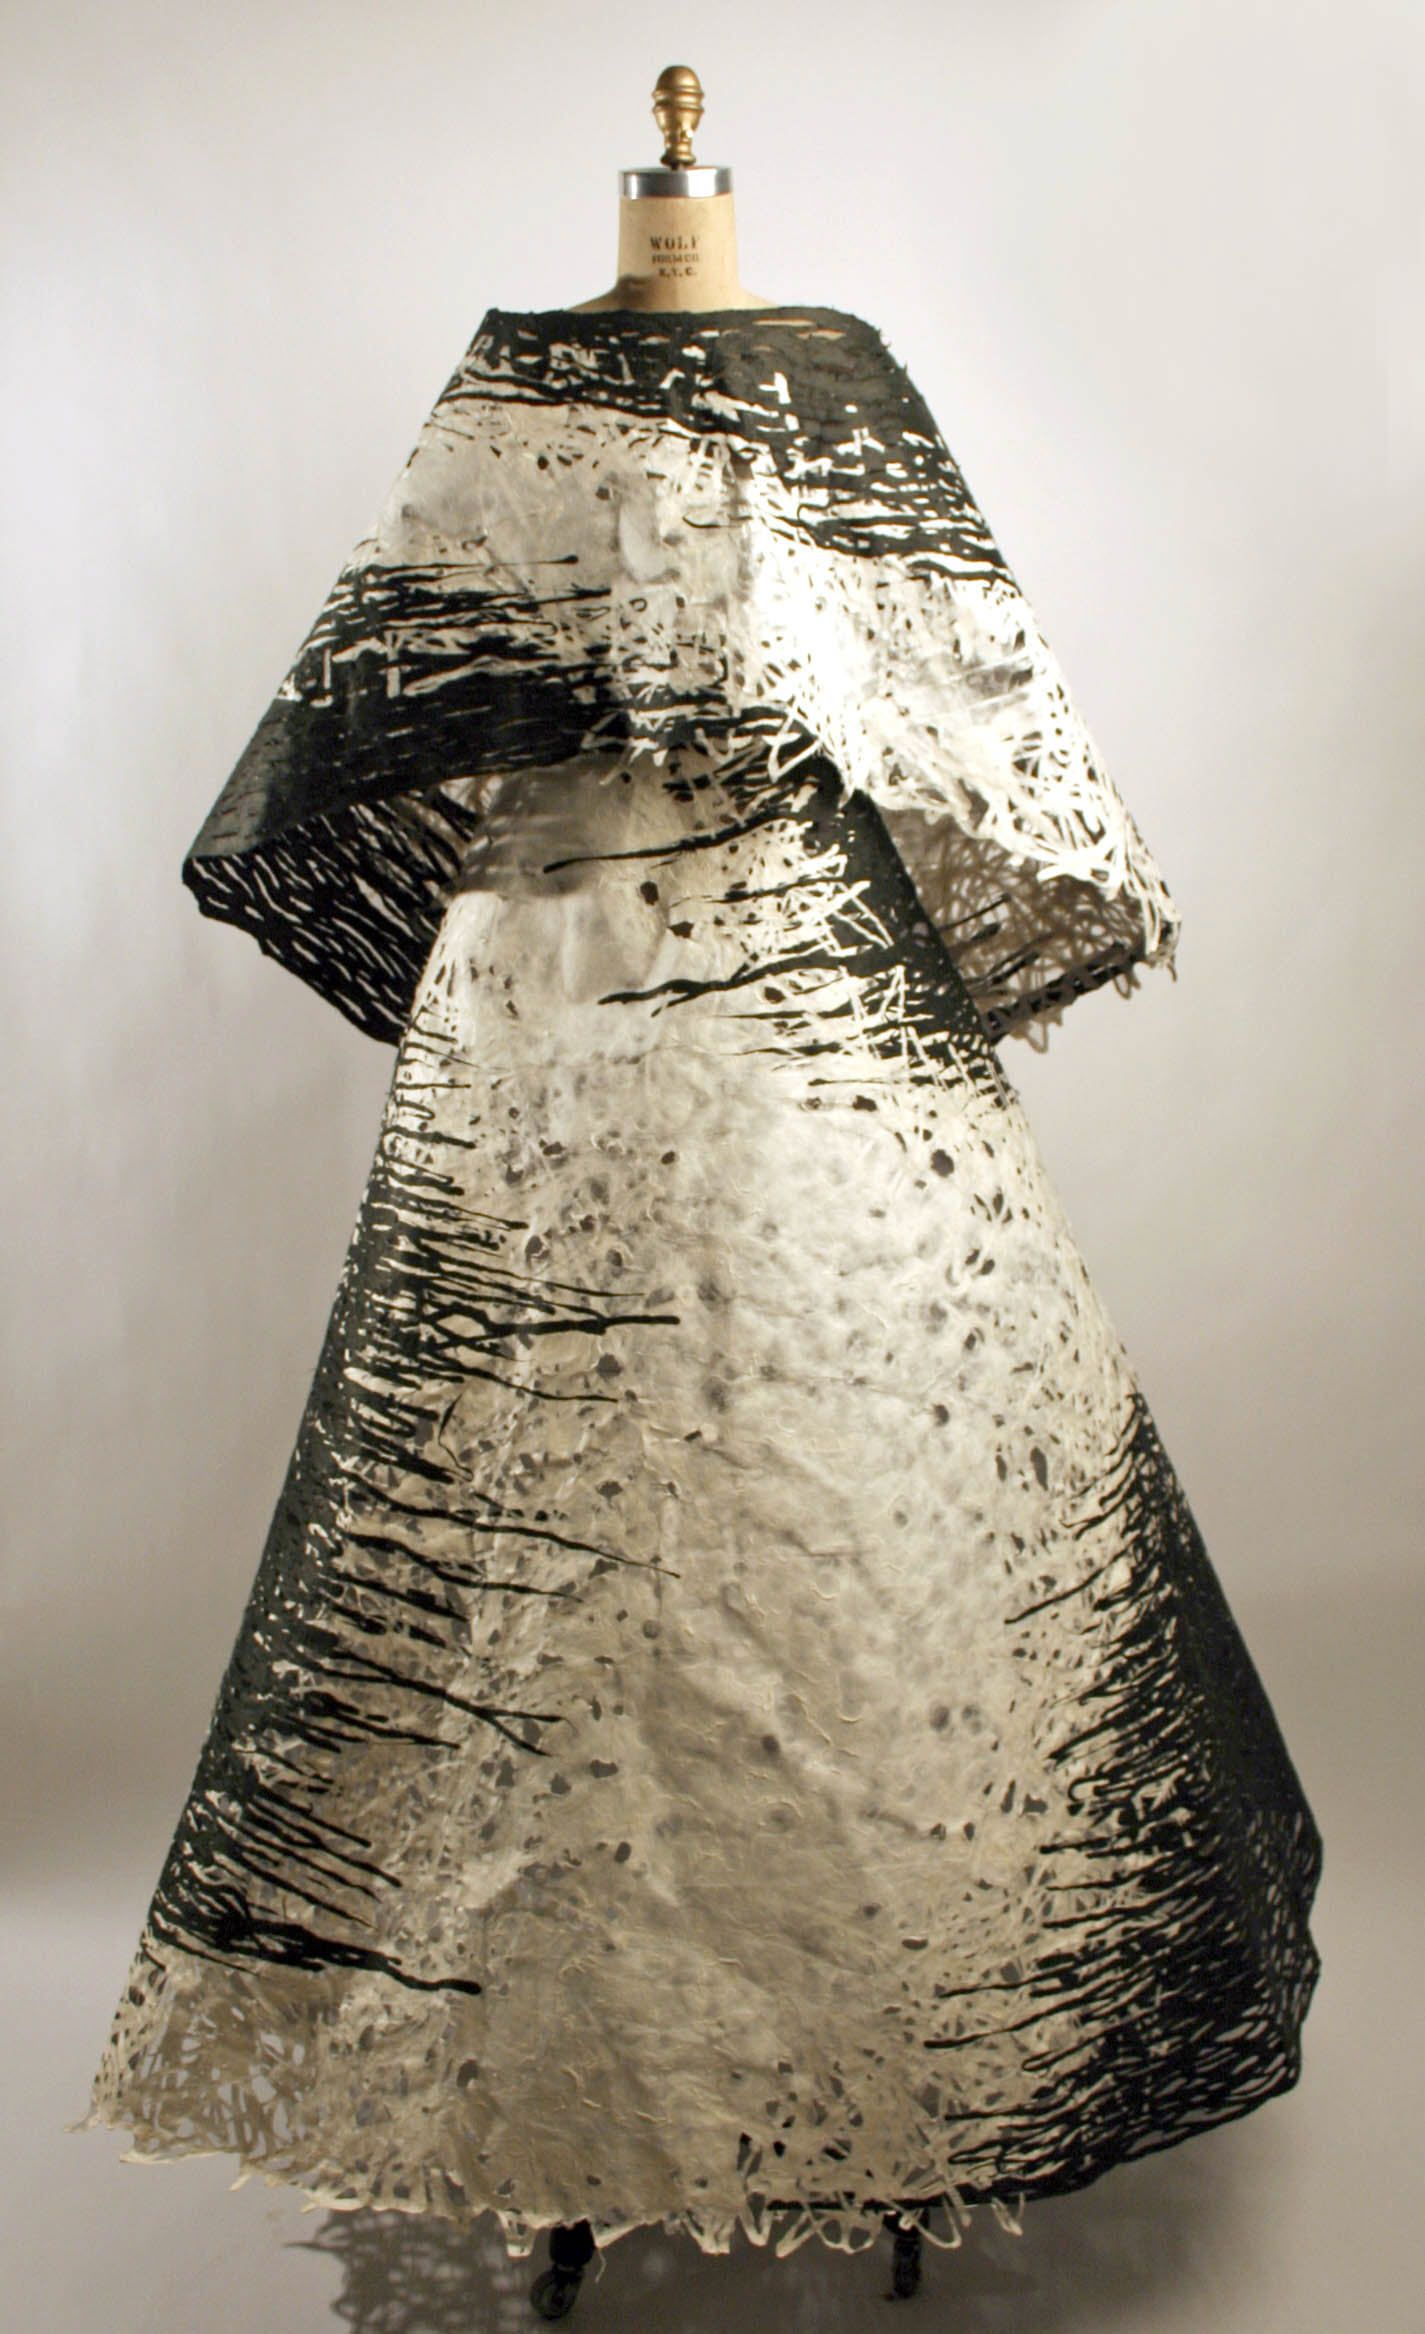 YUMI KATSURA from the Met Collection 2005      a) paper, synthetic; b) paper, synthetic, silk; c, d) synthetic  Dimensions:      Length at CB (a): 29 in. (73.7 cm) Length at CB (b): 52 in. (132.1 cm) Length at CB (c): 49 in. (124.5 cm) Length at CB (d): 21 in. (53.3 cm)  Credit Line:      Gift of Yumi Katsura, 2006